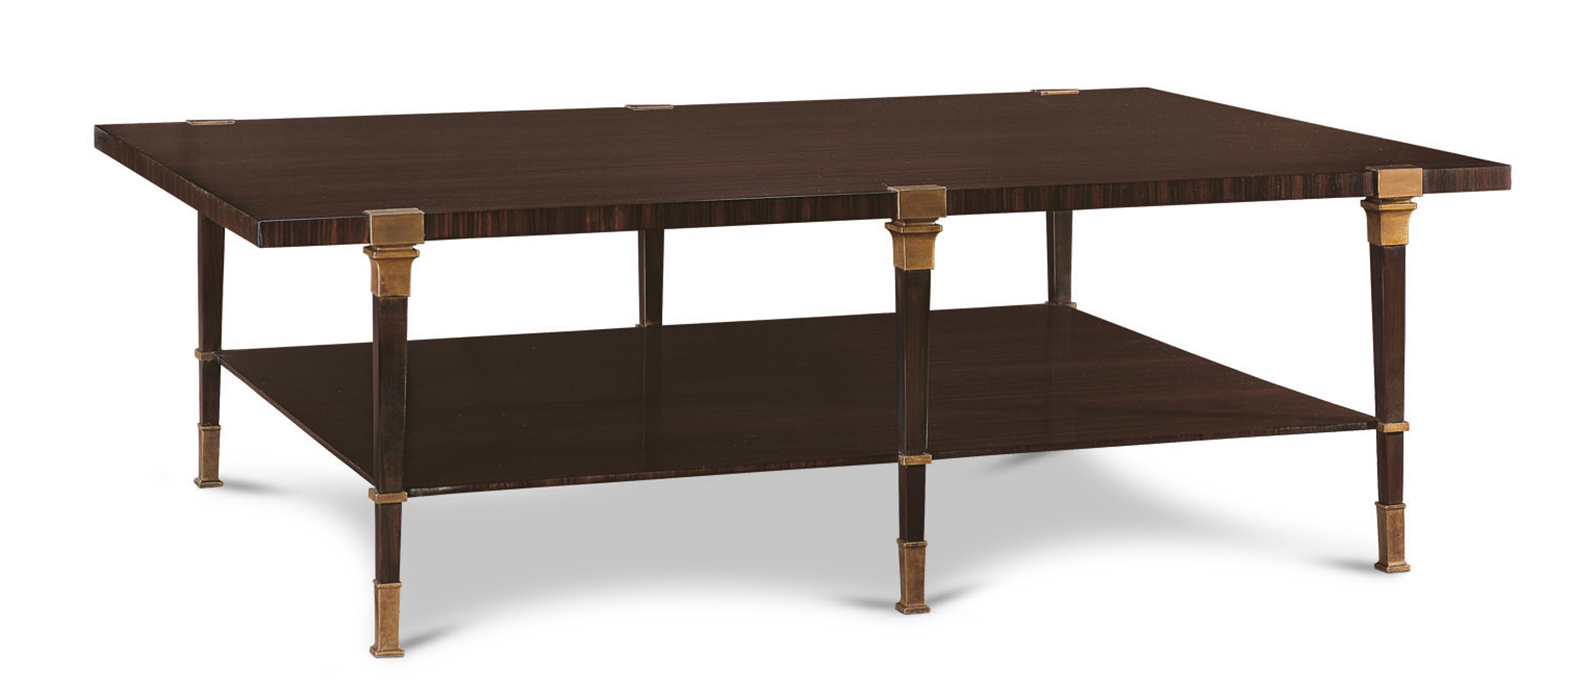 LOUVIERS COCKTAIL TABLE 150 X 75